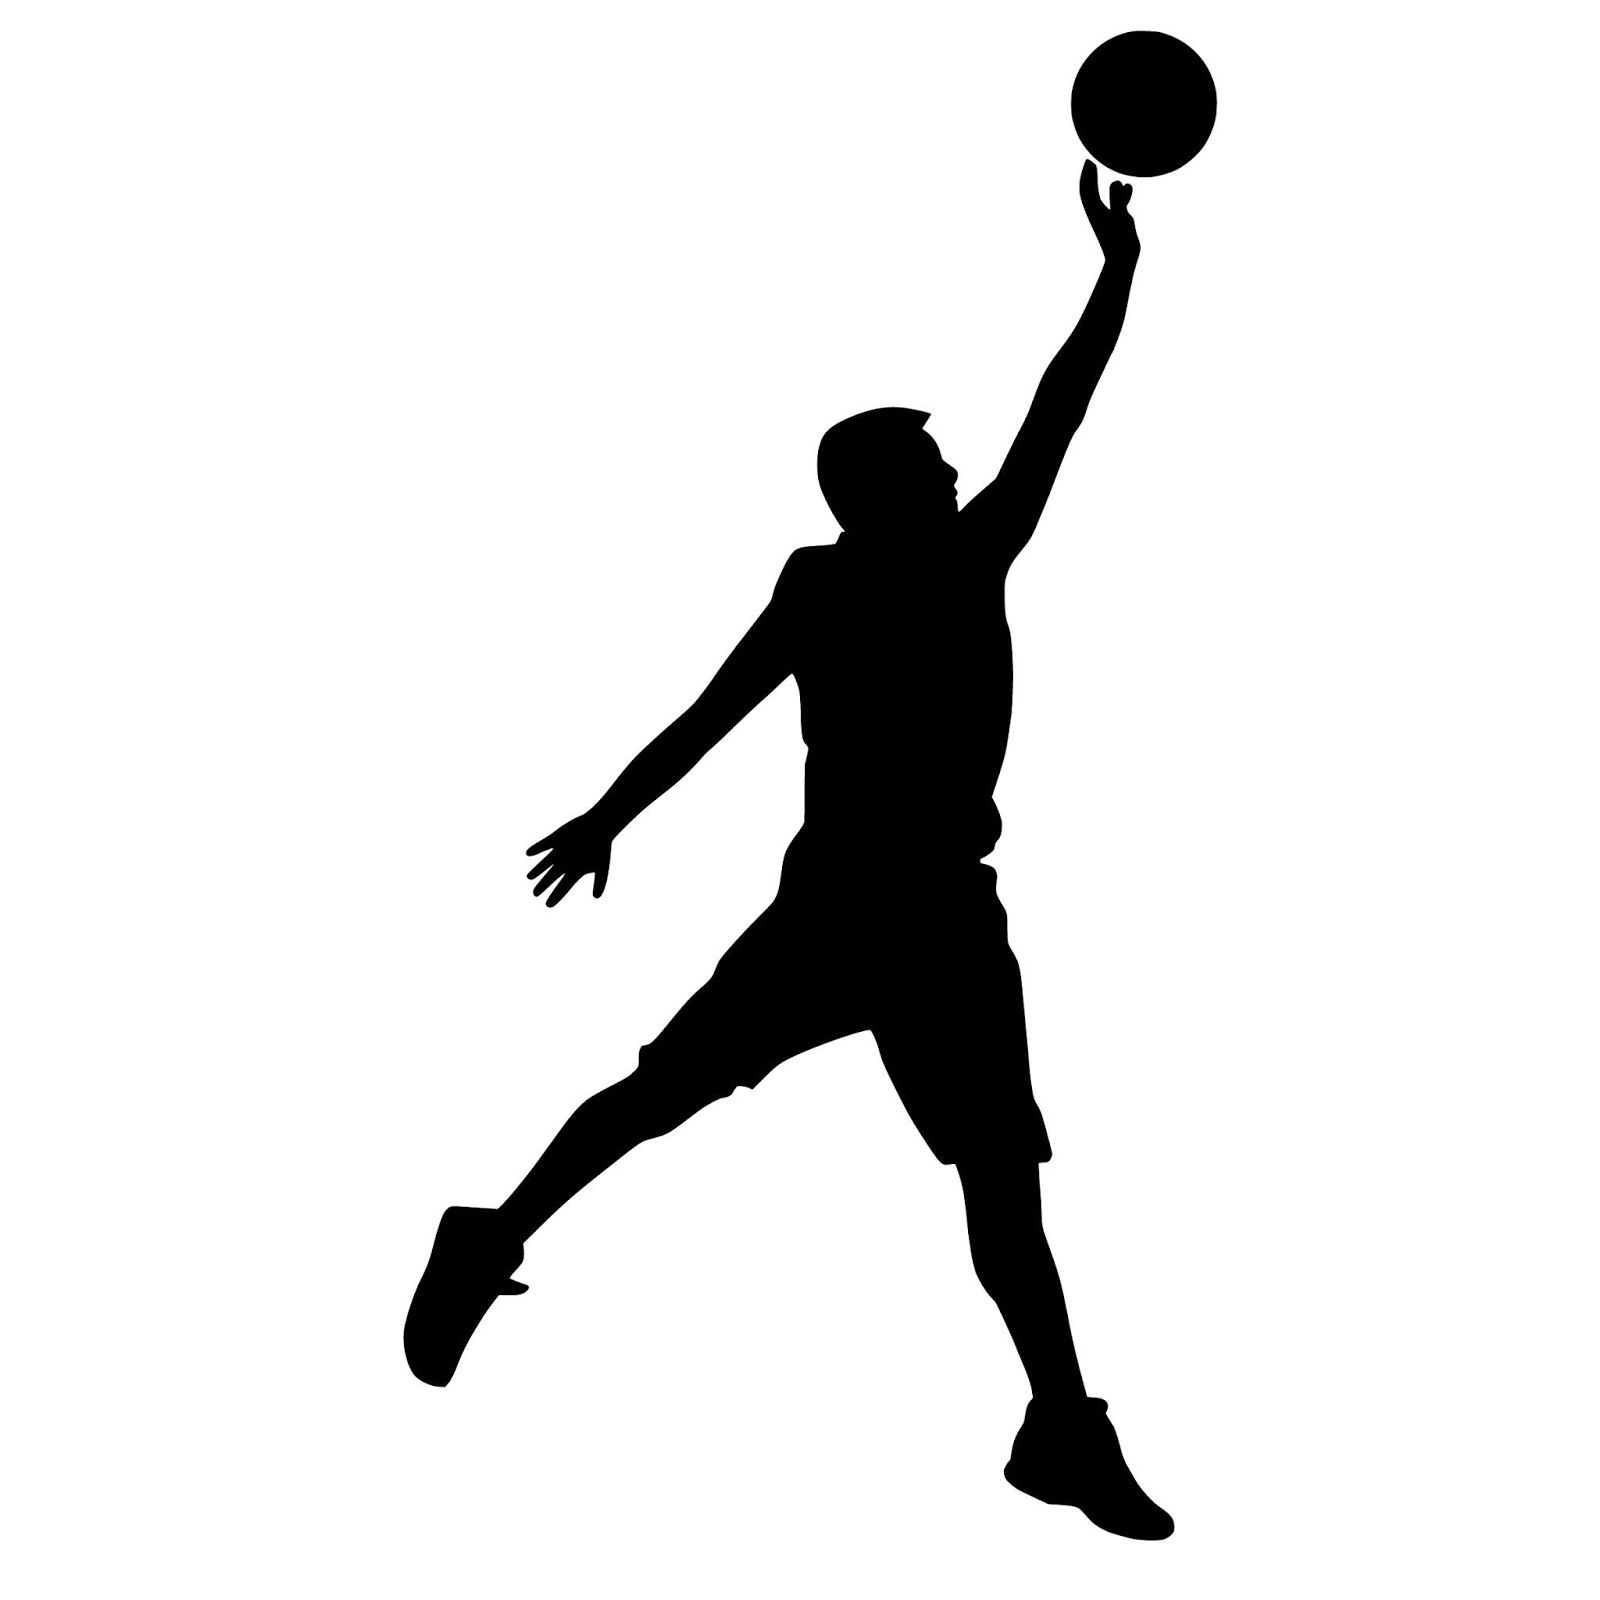 Free Images And Illustrations Basketball Silhouette Sports